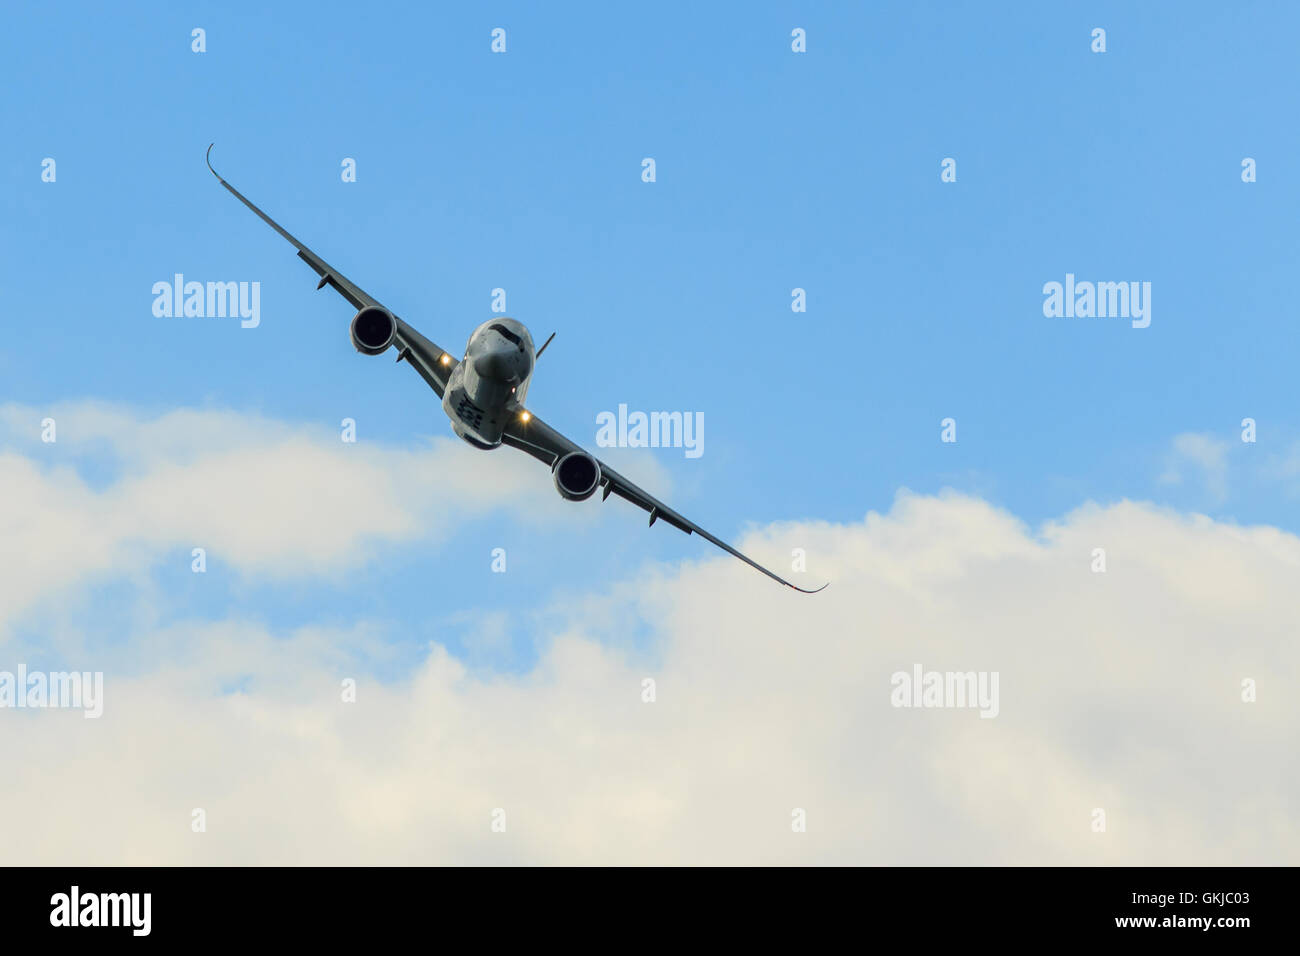 Airbus A350 facing head-on in the clouds - Stock Image